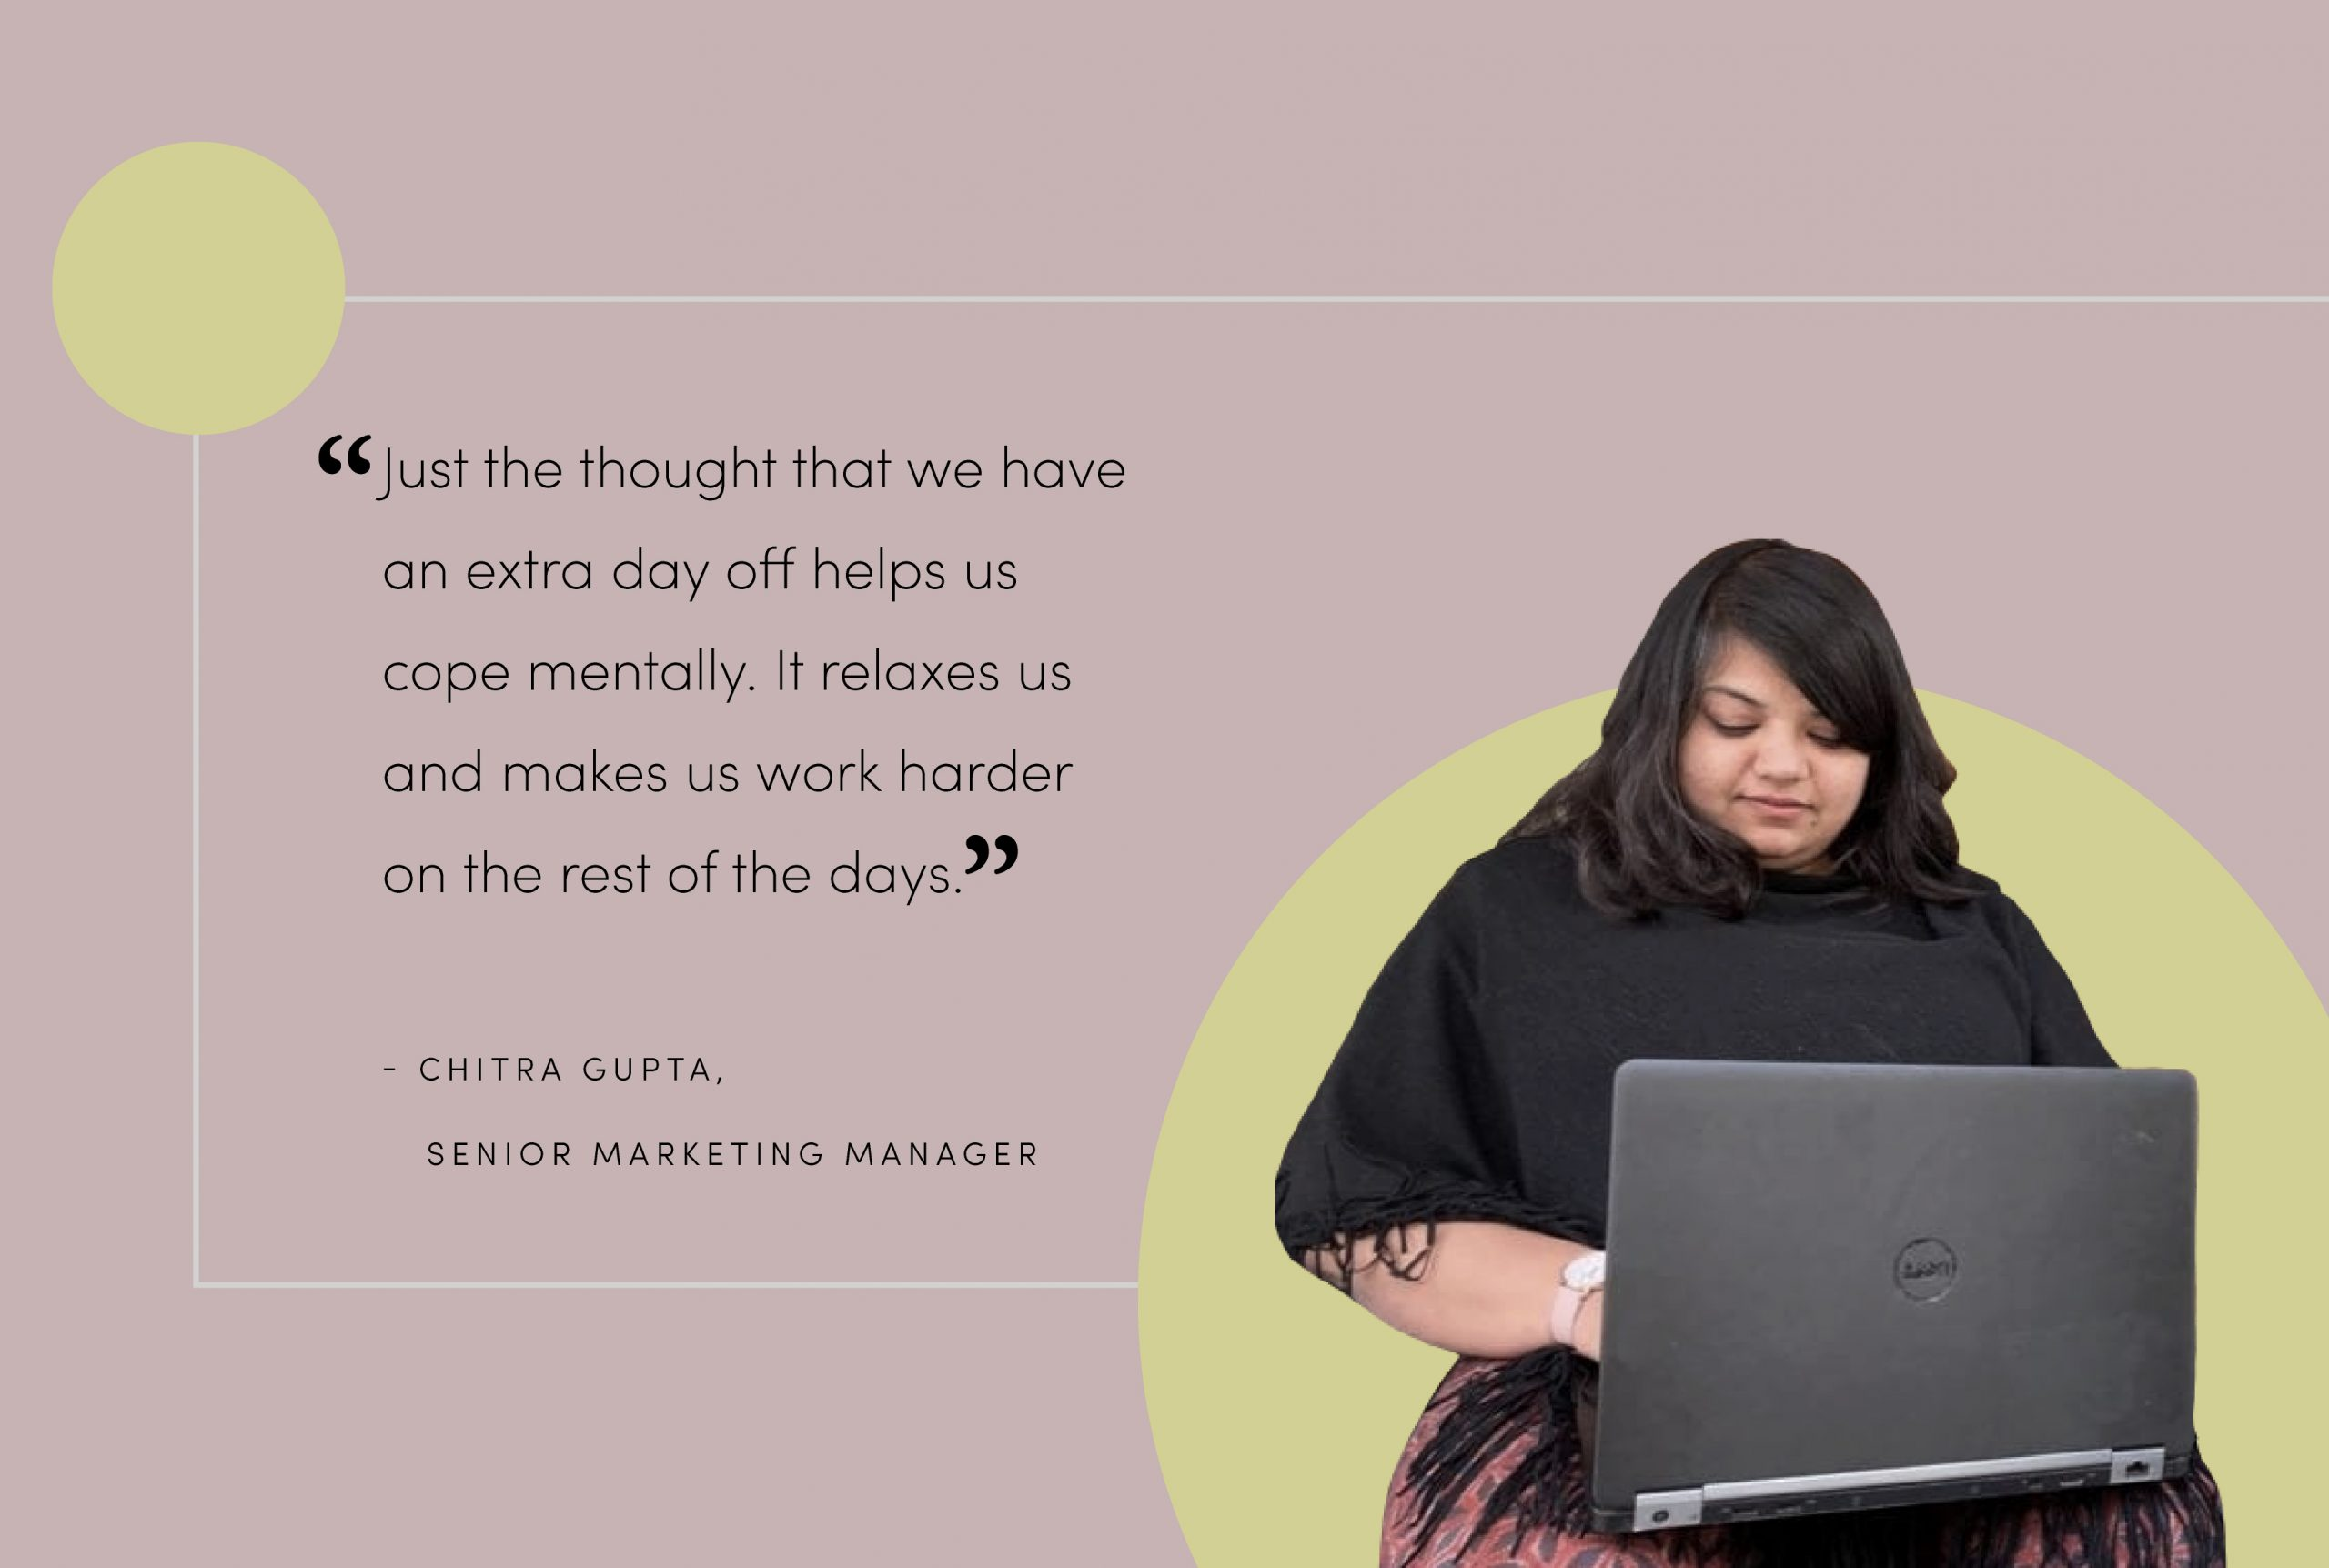 """Image of Chitra Gupta working on her laptop with a quote from her, next to her, that says: """"Just the thought that we have an extra day off helps us cope mentally. It relaxes us and makes us work harder on the rest of the days."""". Photo courtesy: Chitra Gupta"""